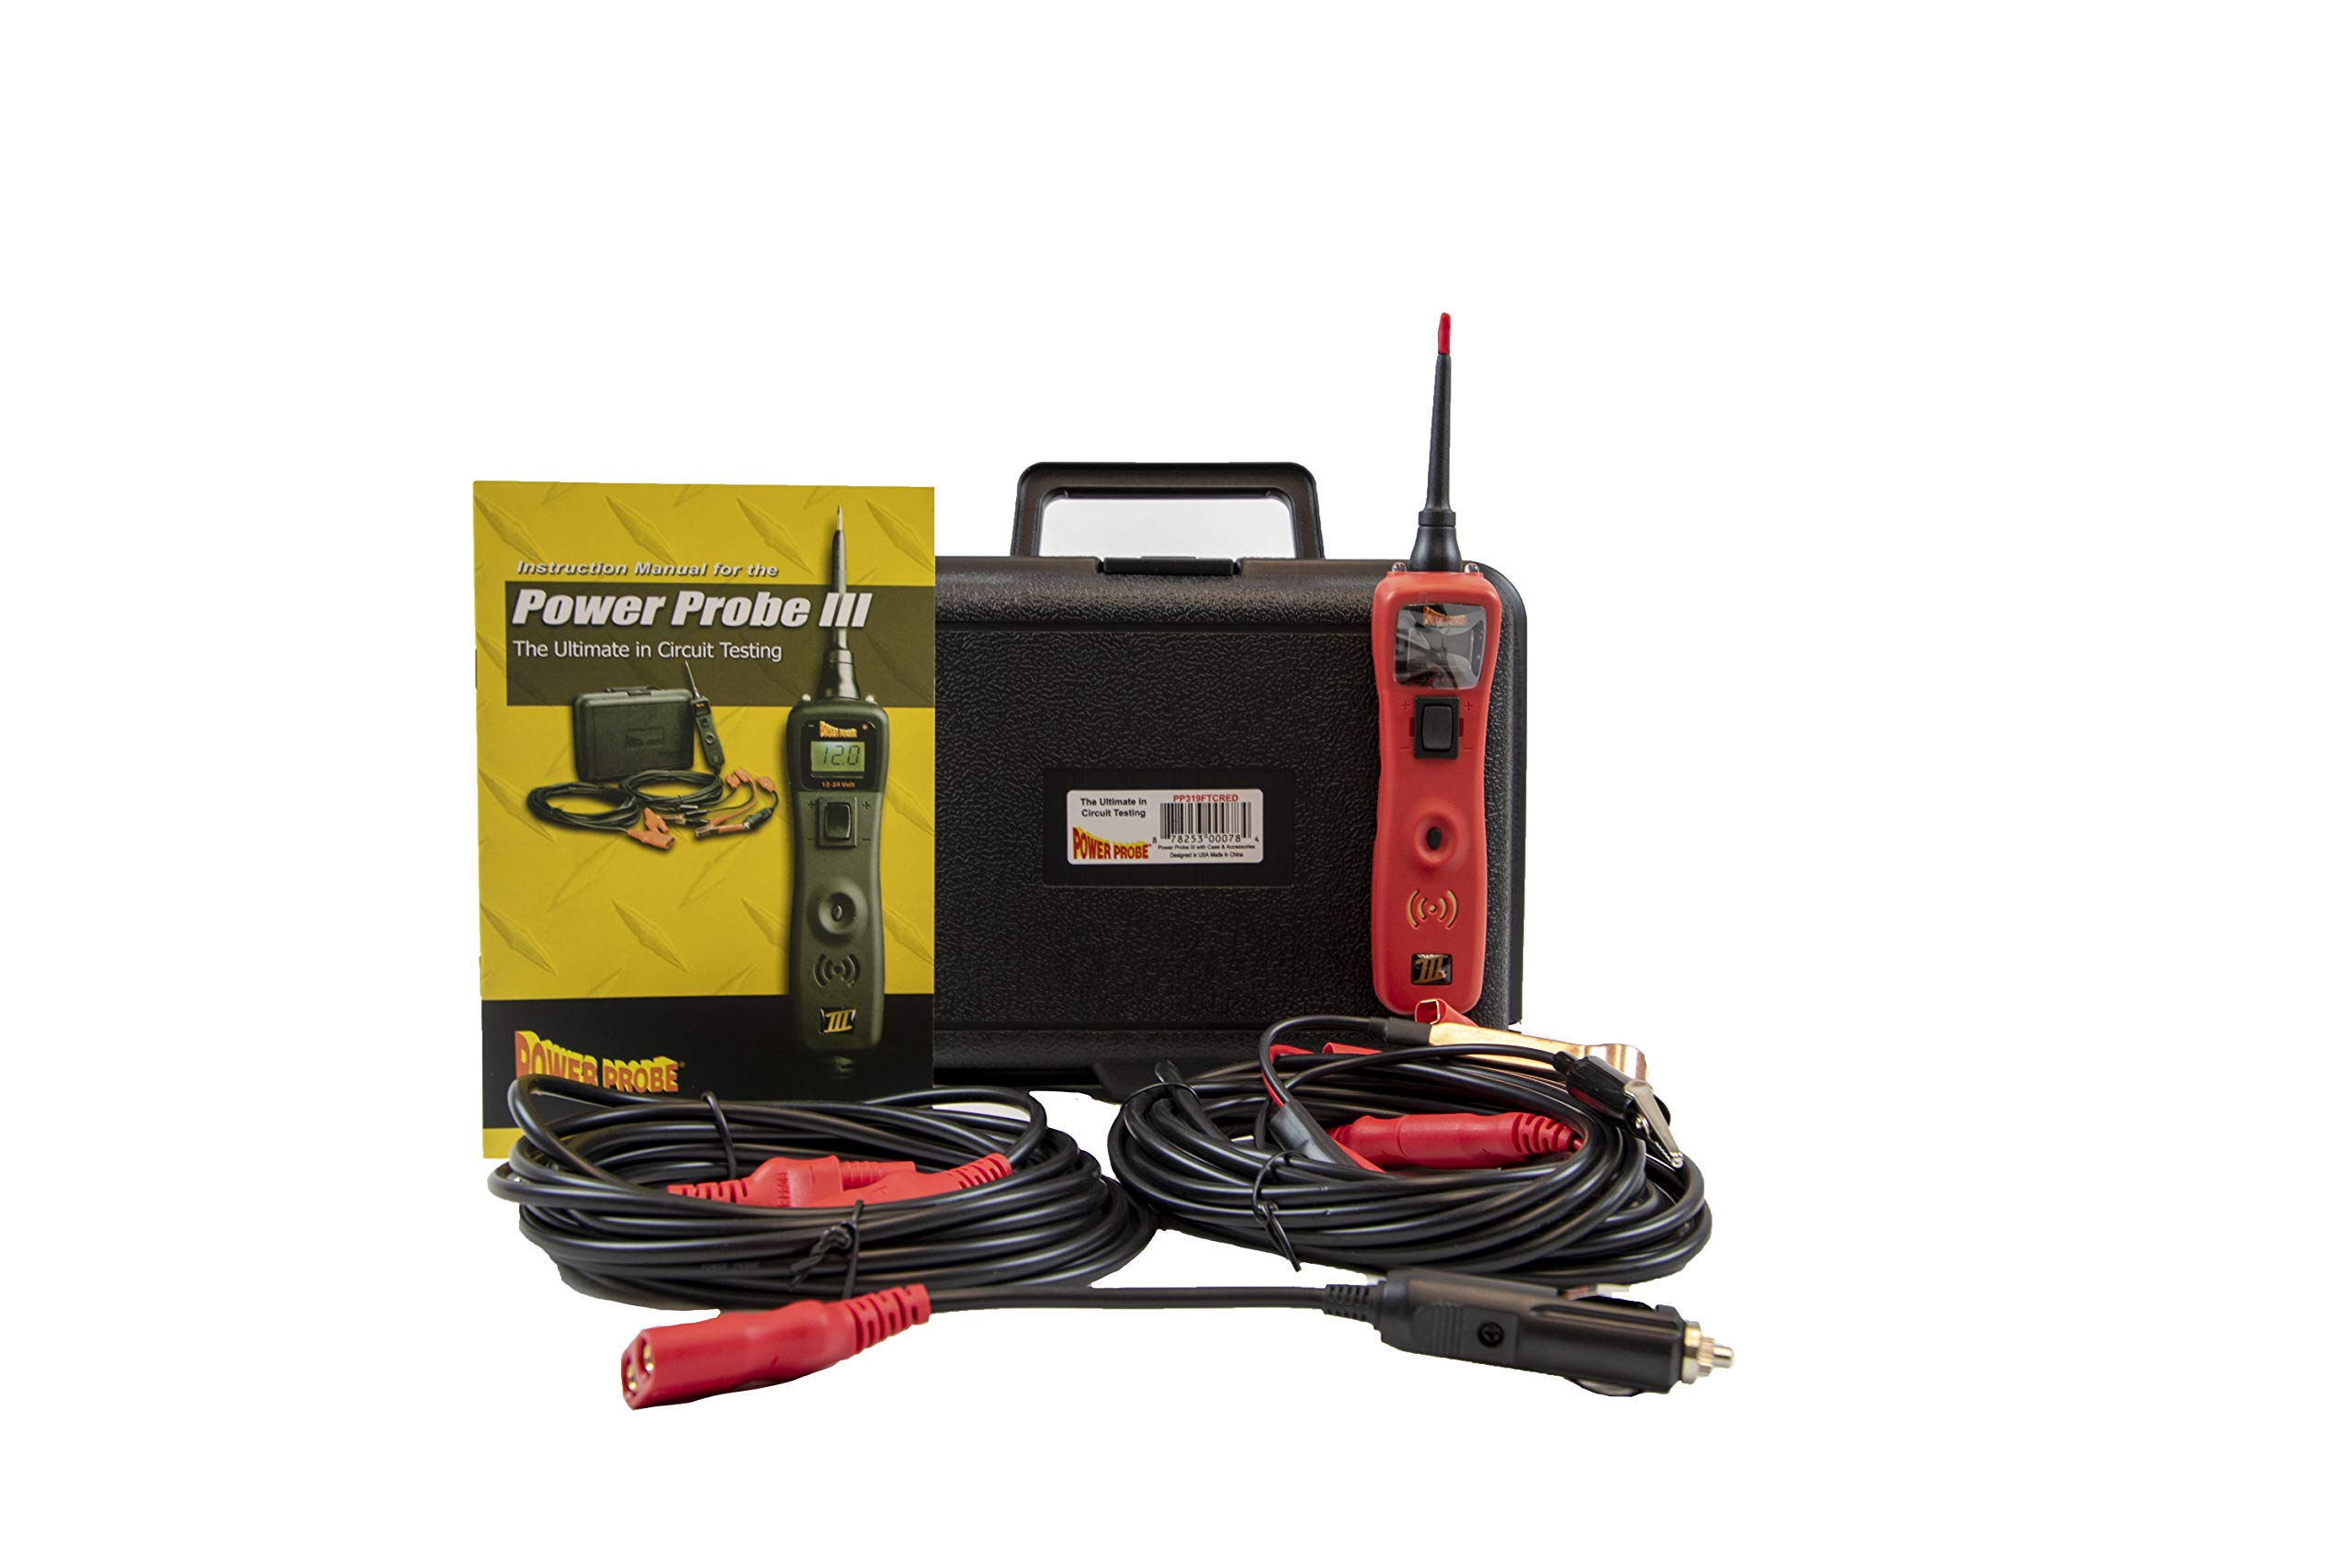 Diesel Laptops Power Probe 3 (III) Red Big Display Circuit Tester Kit in Case with 12-Months of Truck Fault Codes by Diesel Laptops (Image #2)